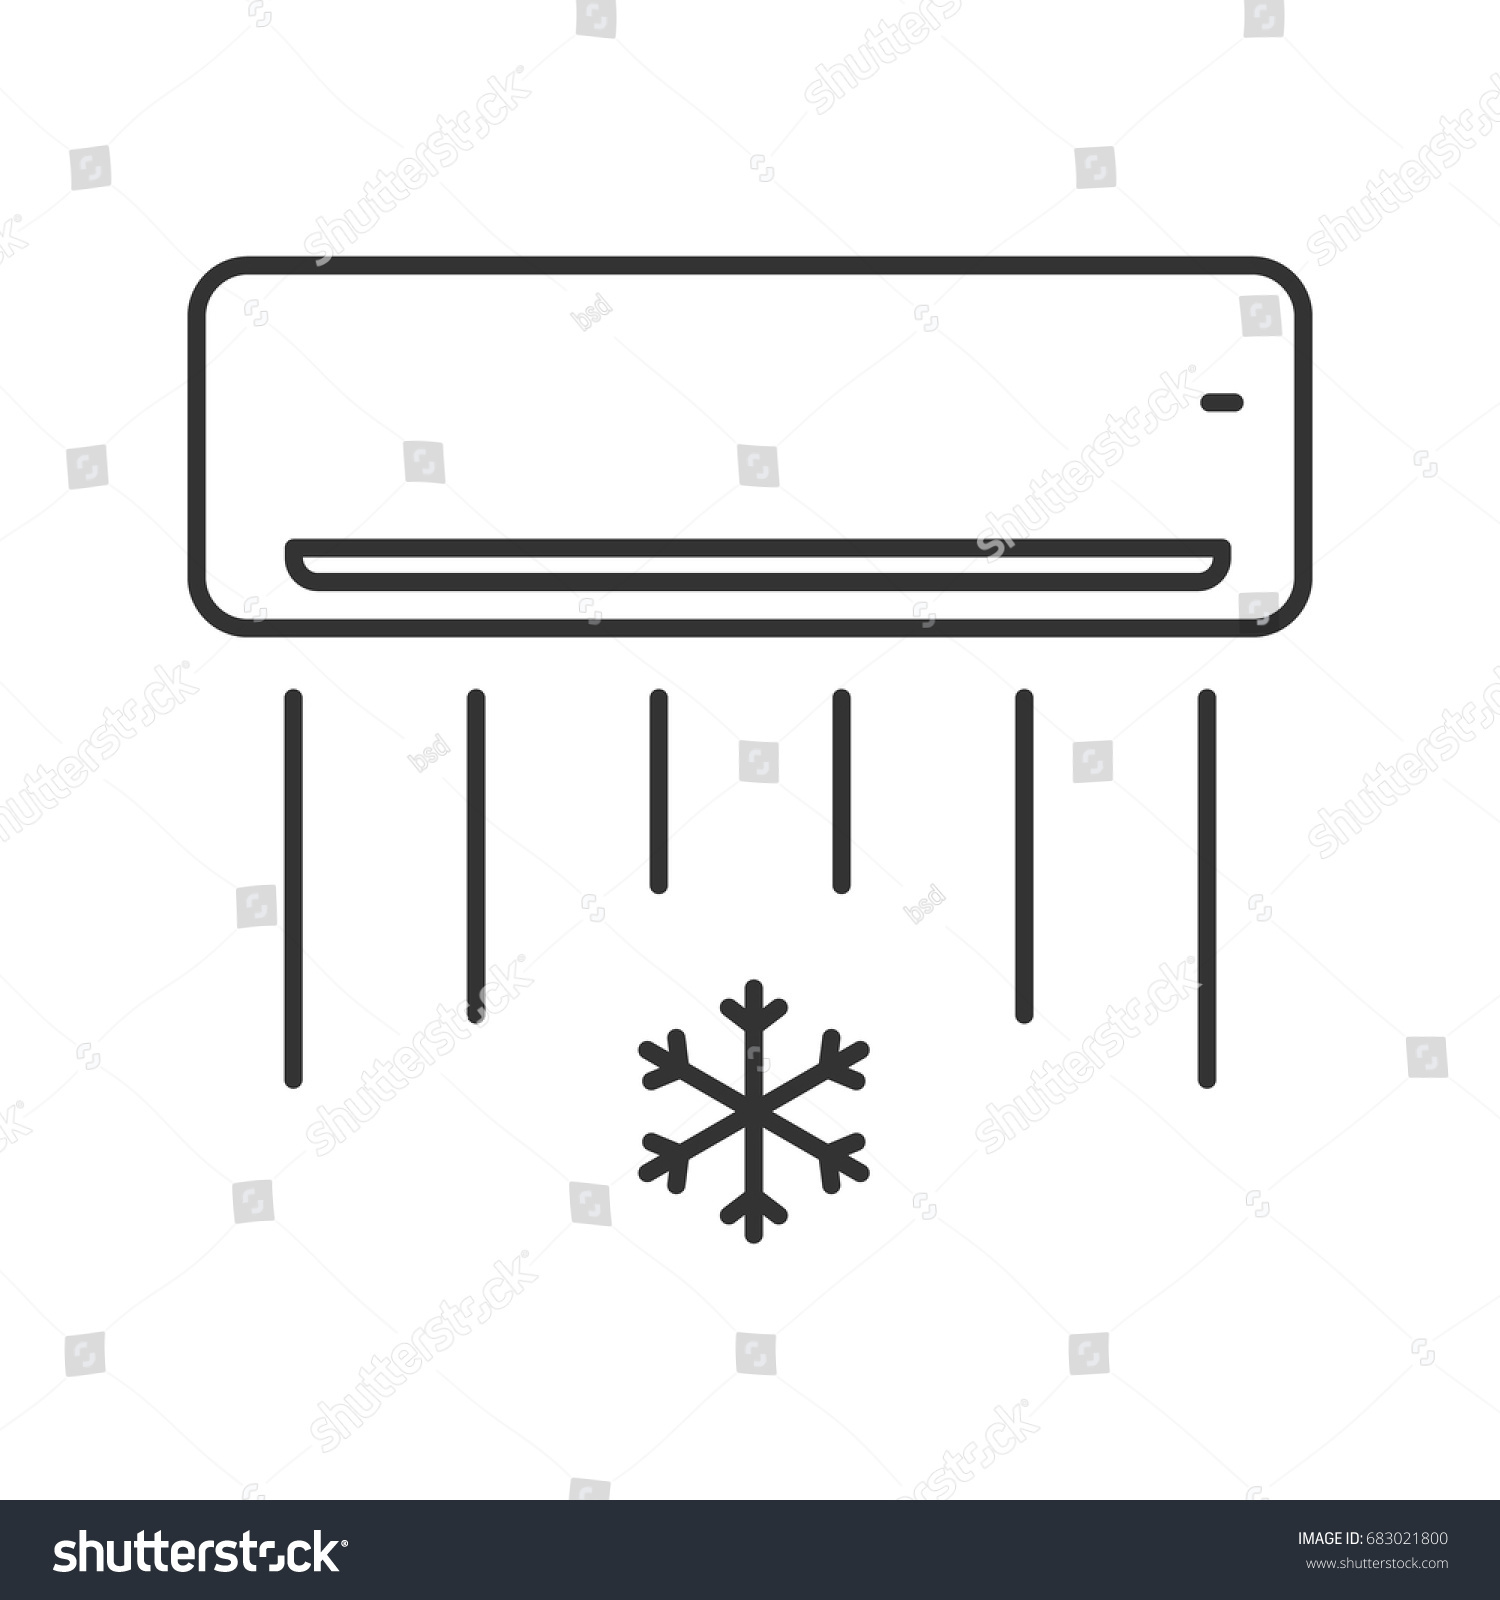 Air conditioner linear icon thin line stock vector 683021800 air conditioner linear icon thin line illustration contour symbol vector isolated outline drawing buycottarizona Image collections